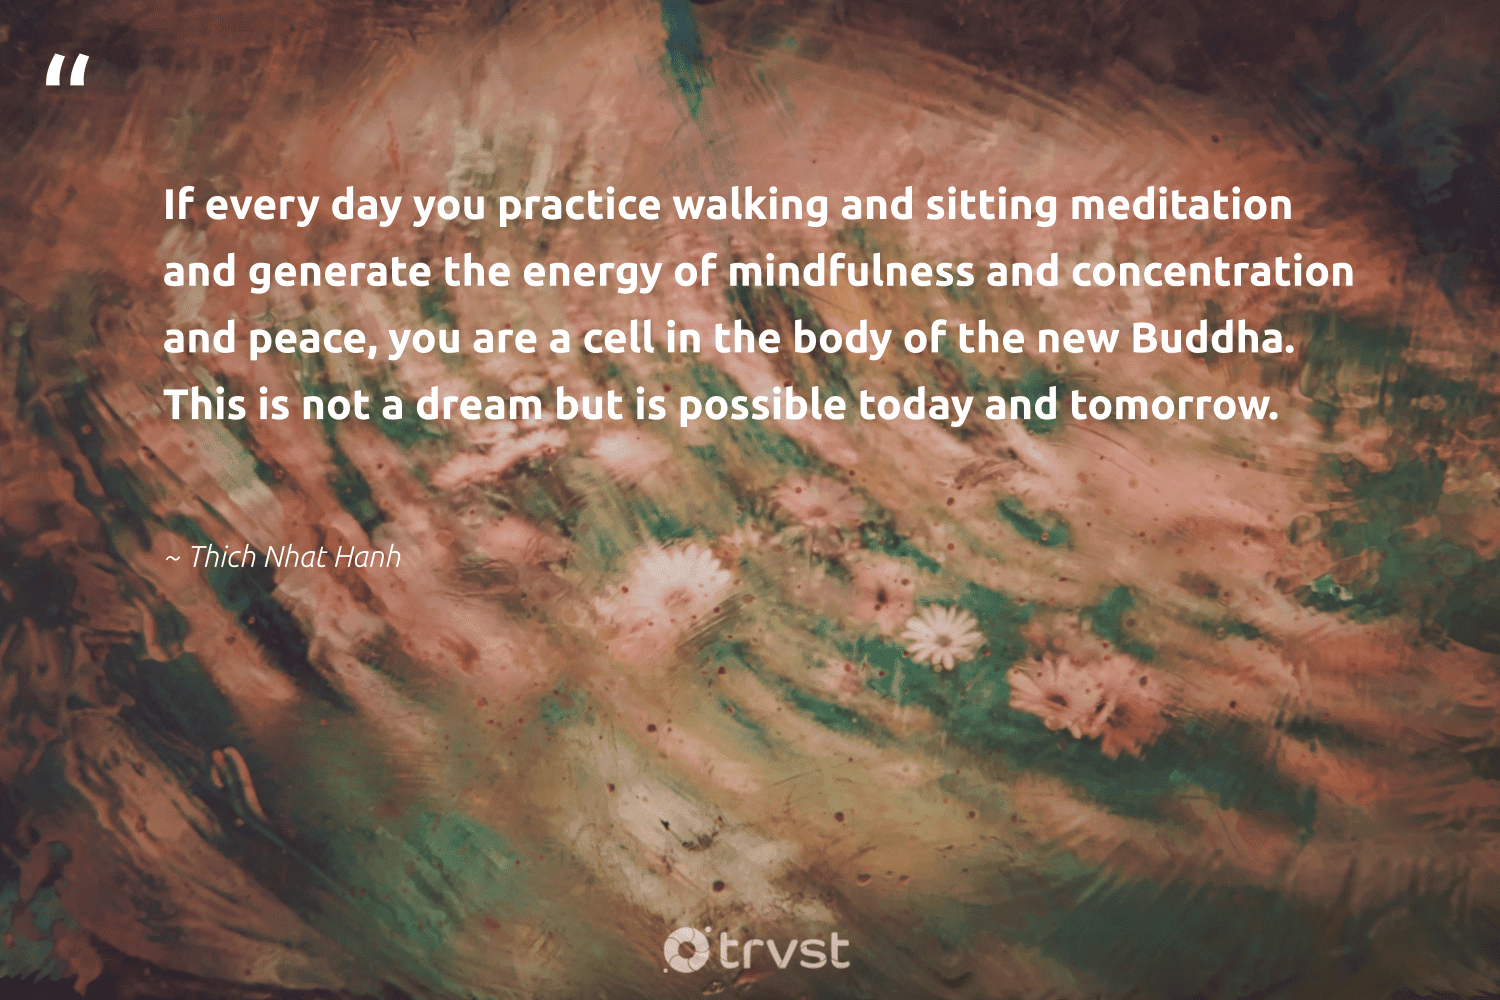 """""""If every day you practice walking and sitting meditation and generate the energy of mindfulness and concentration and peace, you are a cell in the body of the new Buddha. This is not a dream but is possible today and tomorrow.""""  - Thich Nhat Hanh #trvst #quotes #peace #energy #mindfulness #meditation #mindful #goals #wellness #begreat #dogood #creativemindset"""